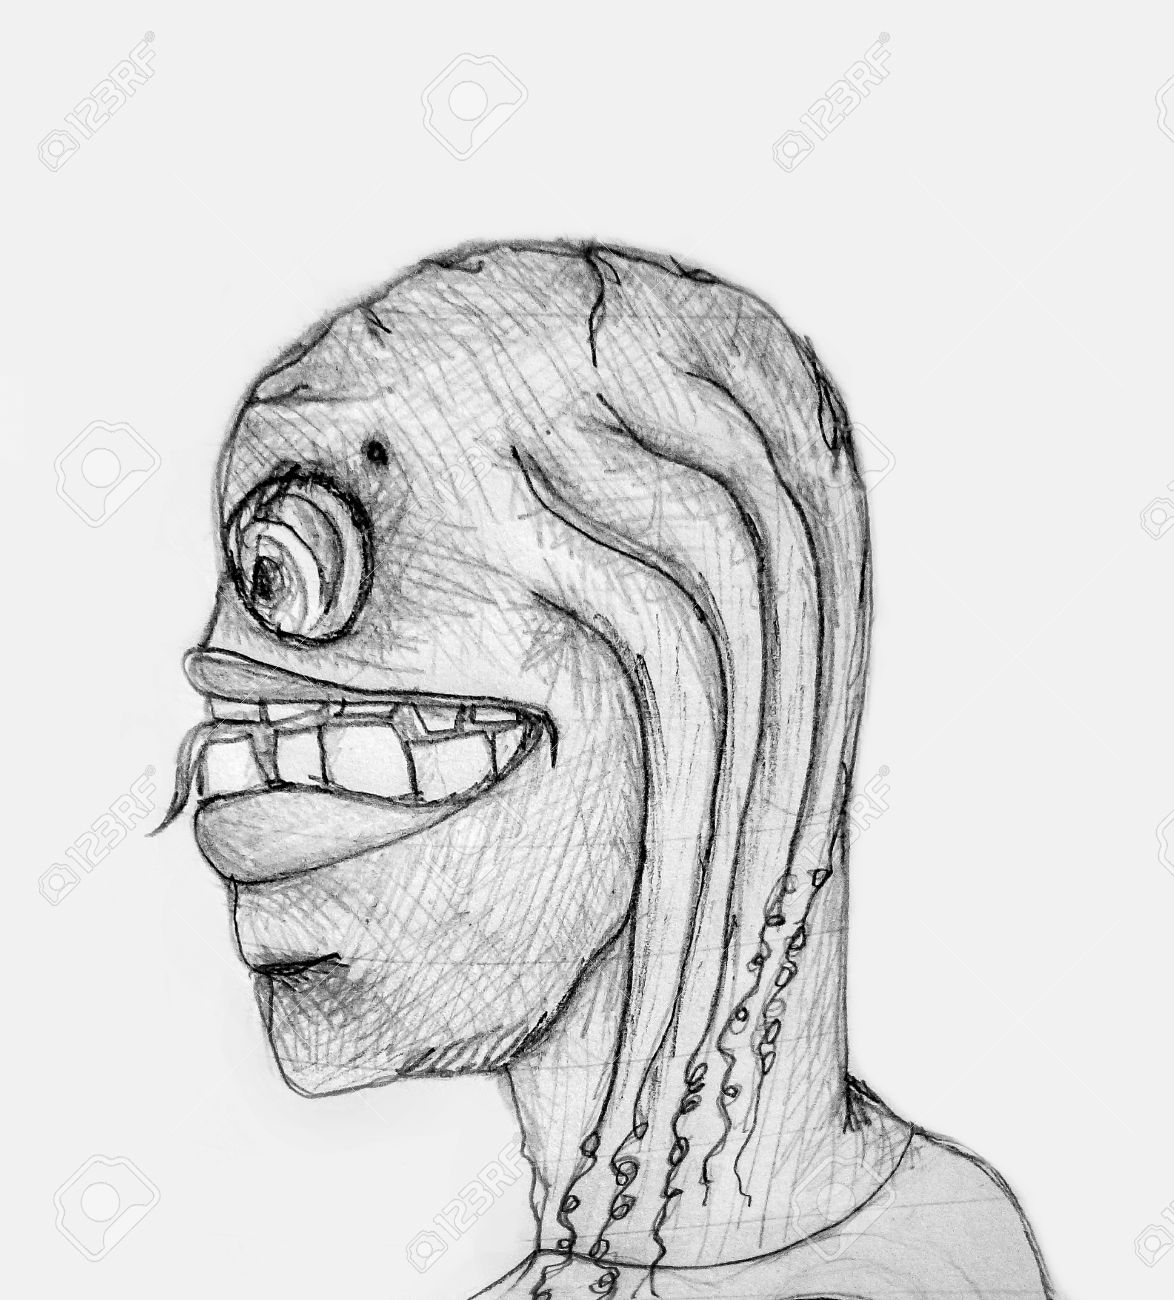 Pencil drawing artwork depicting an strange futuristic monster alien or man in black and white tones